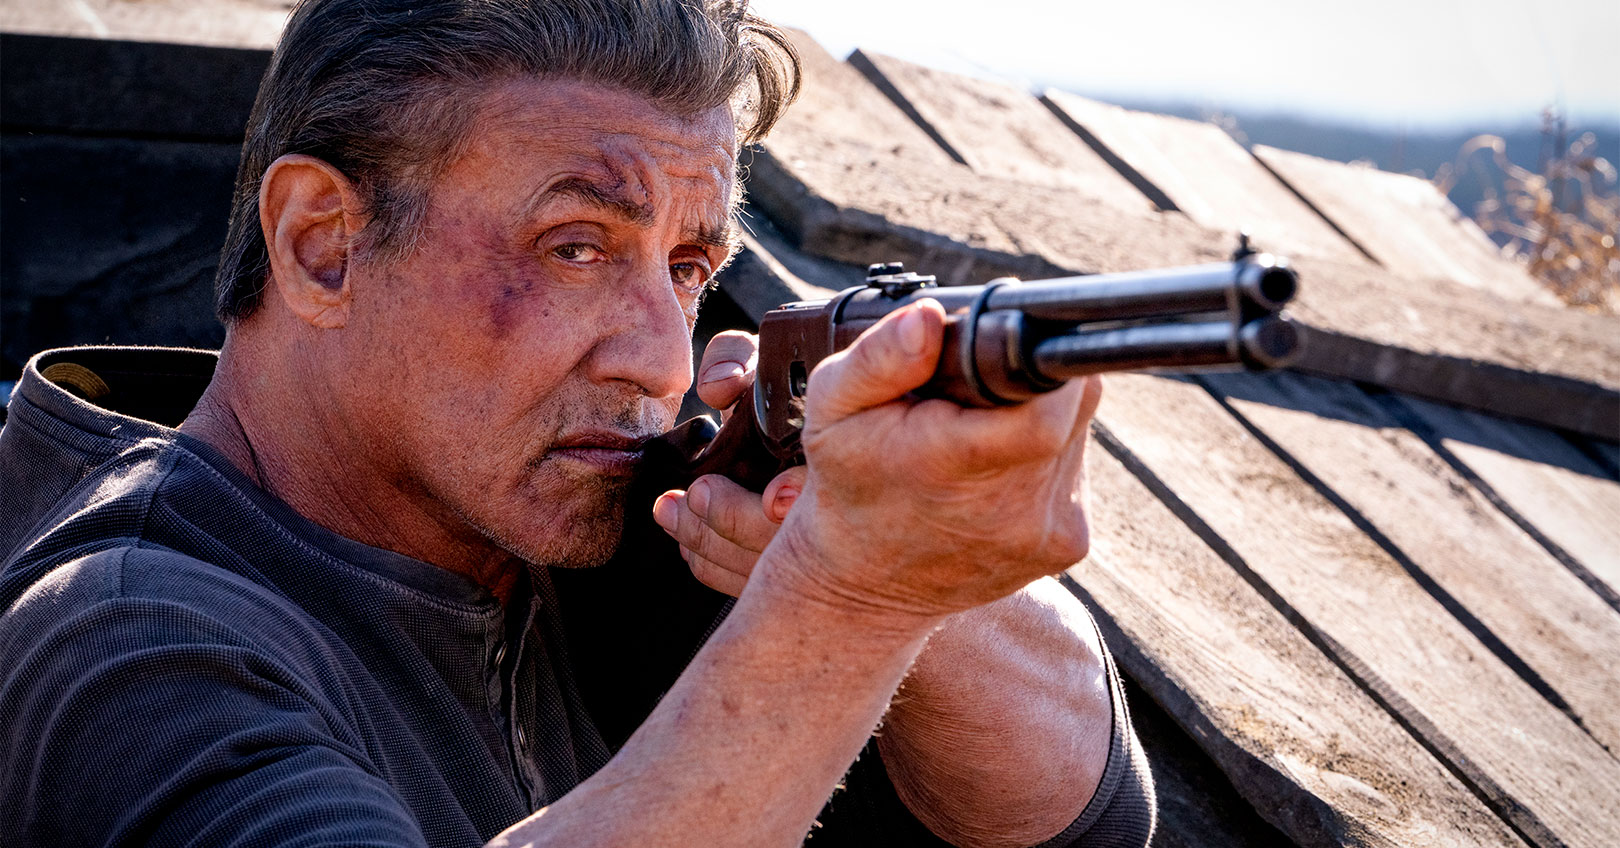 Rambo: Last Blood - Sylvester Stallone